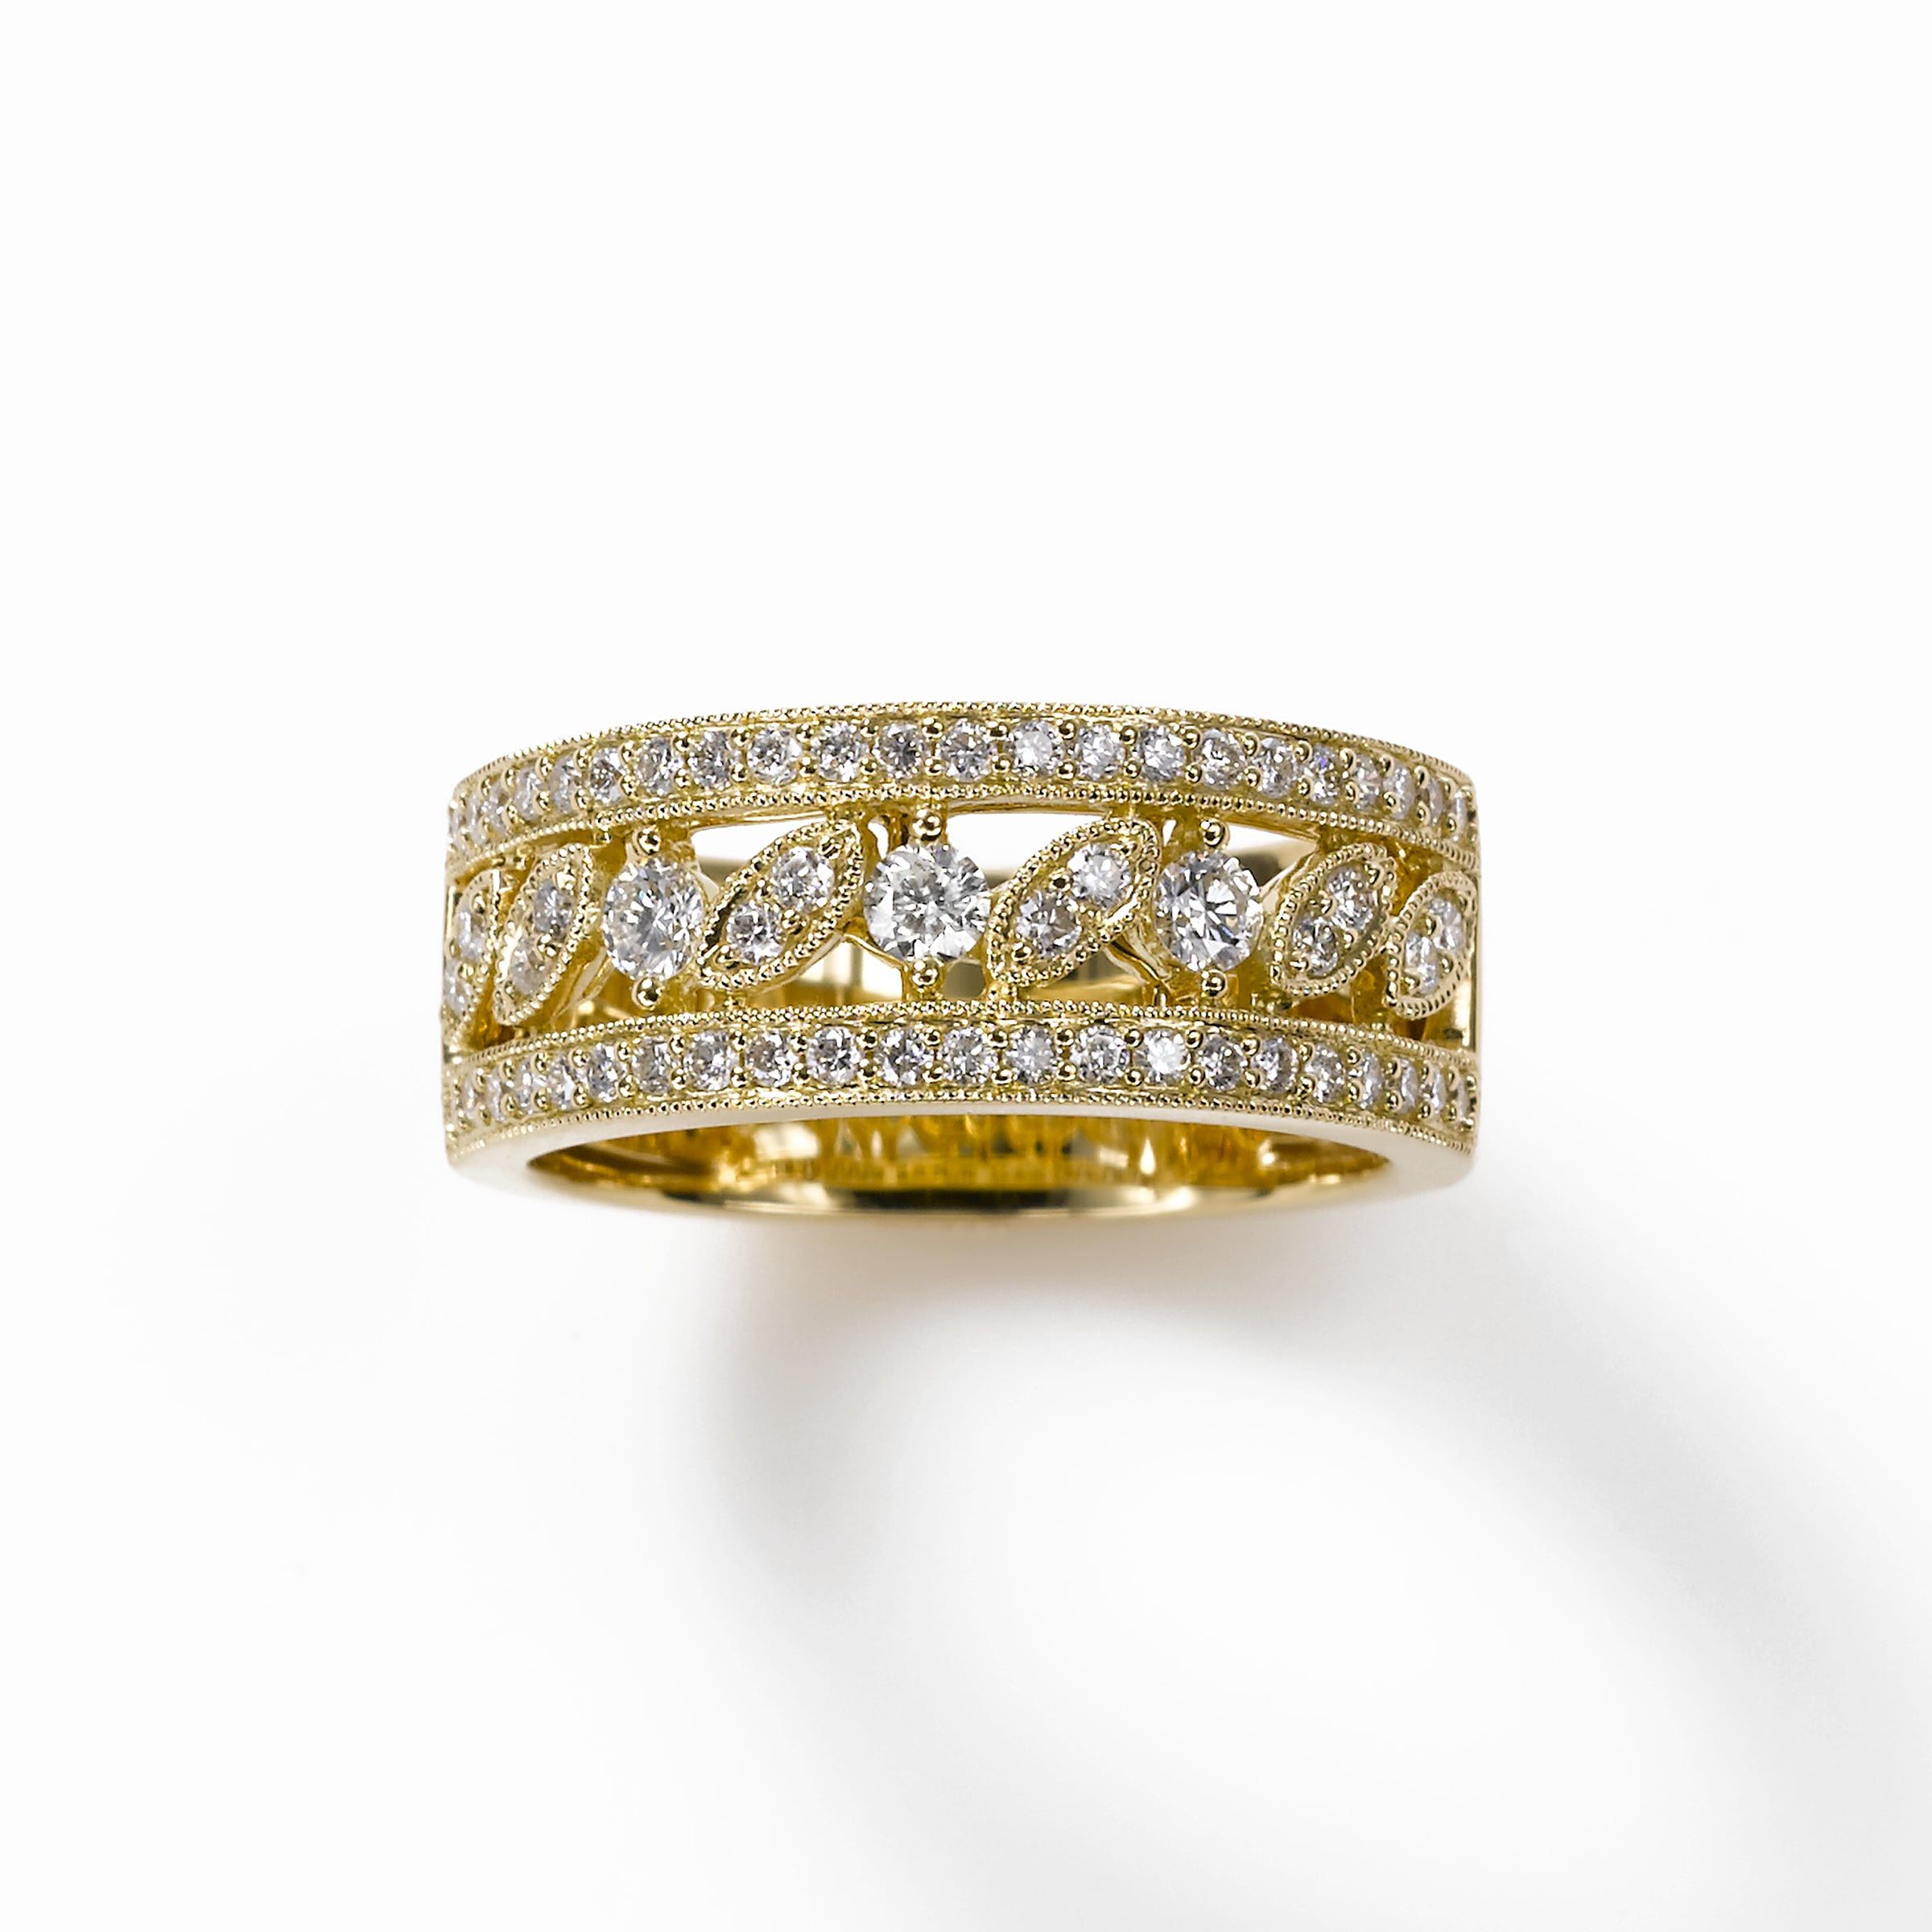 Wide Vintage Look Diamond Band, .70 Carat, 18K Yellow Gold